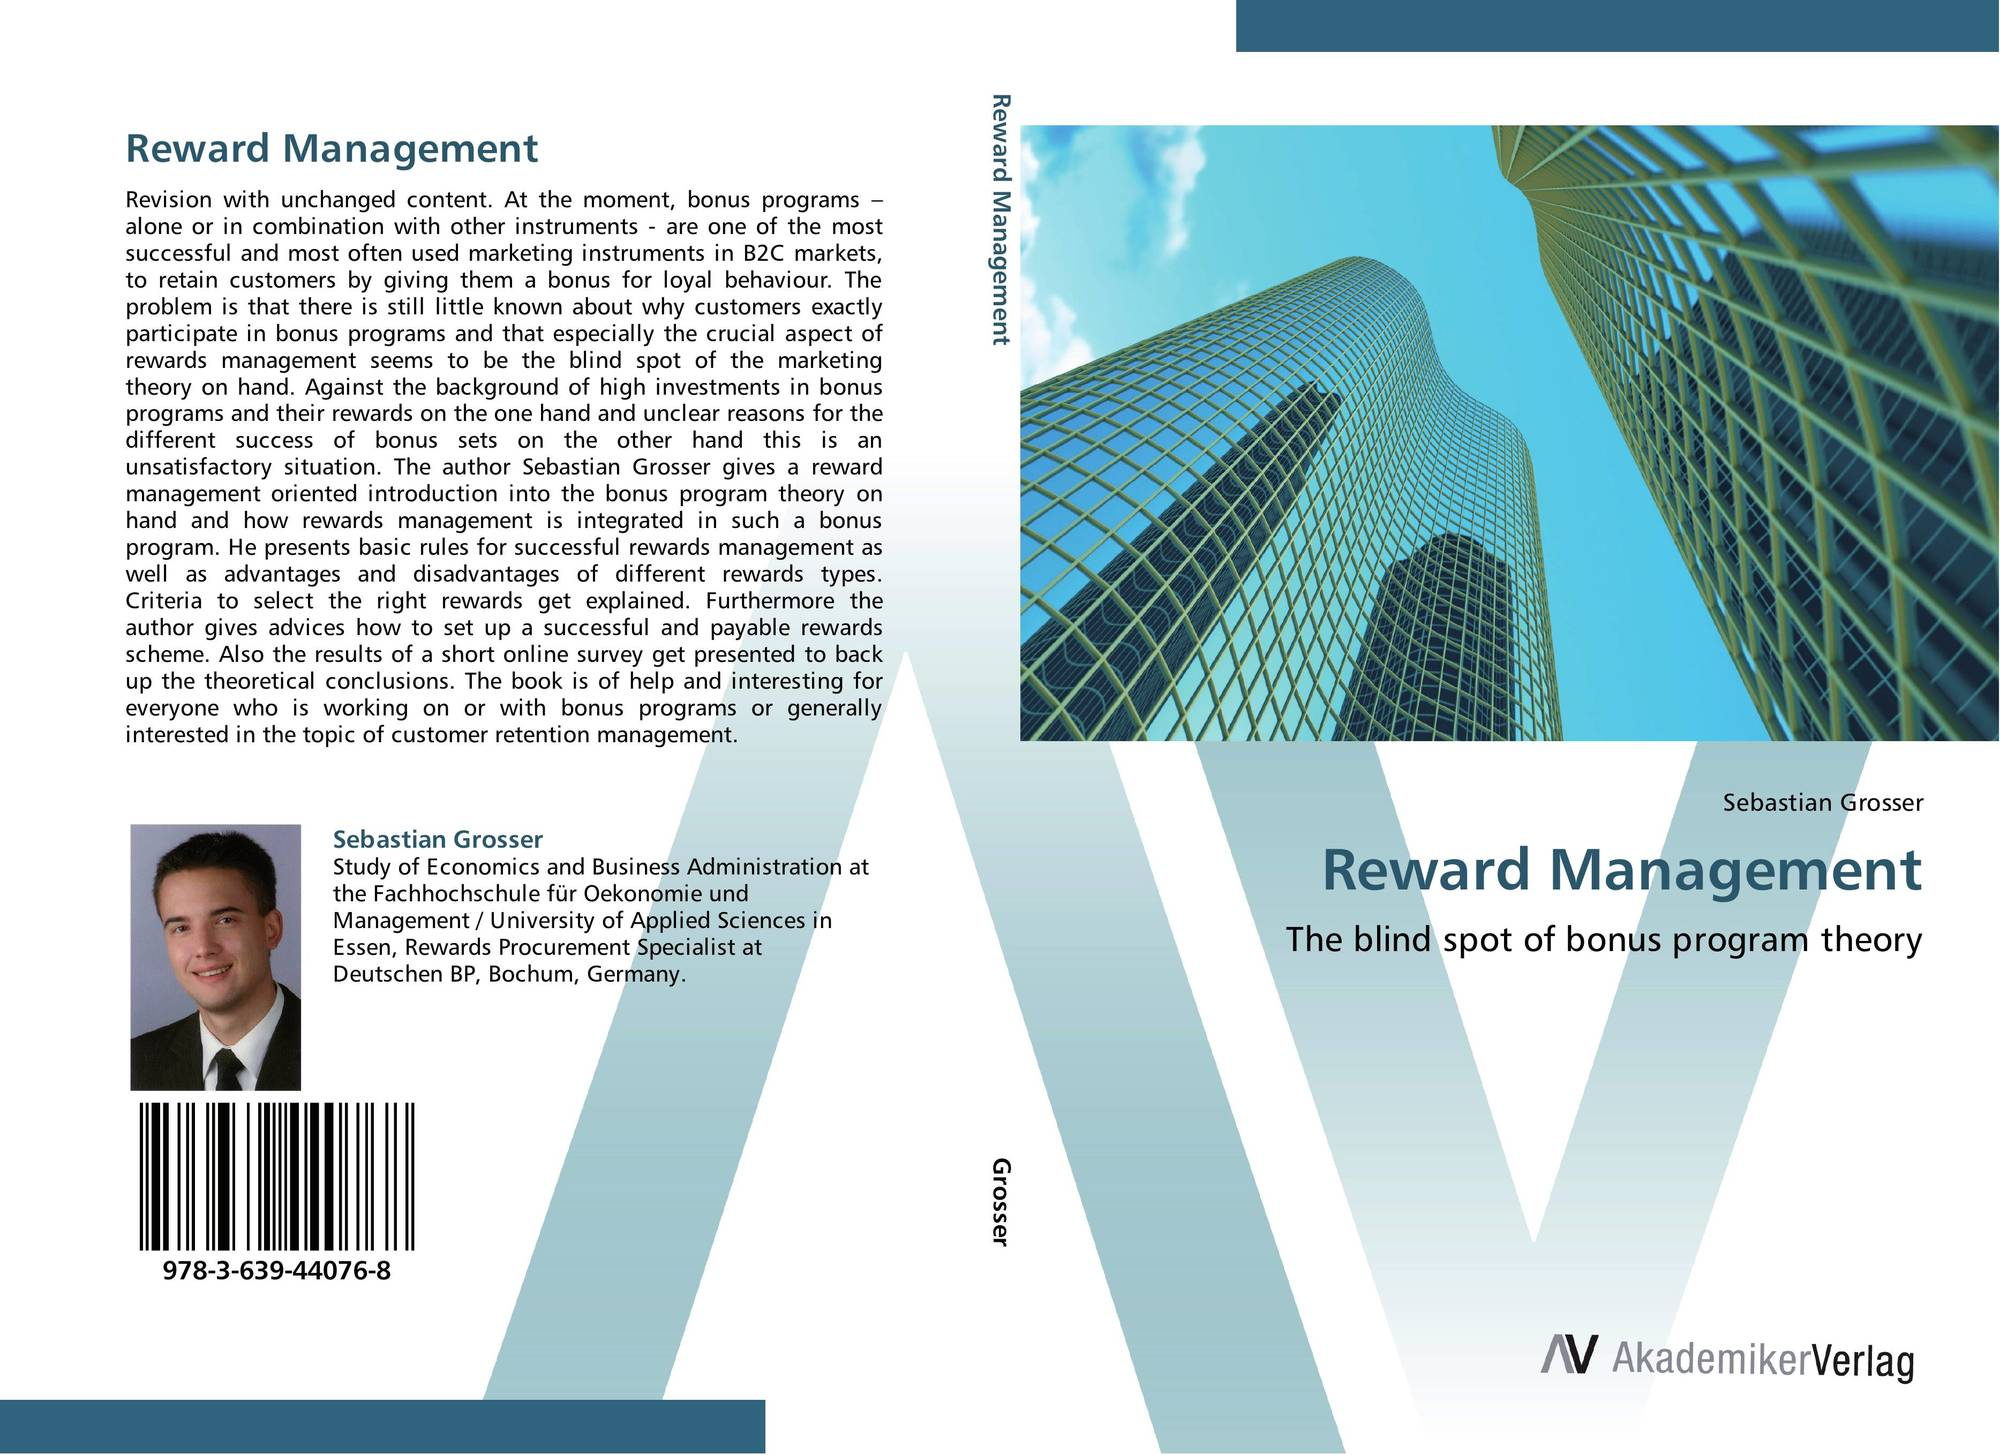 reward management system Module 1 performance management and reward systems in context 1/1 case study 73: evaluation of performance management system at accounting, inc 7/26.